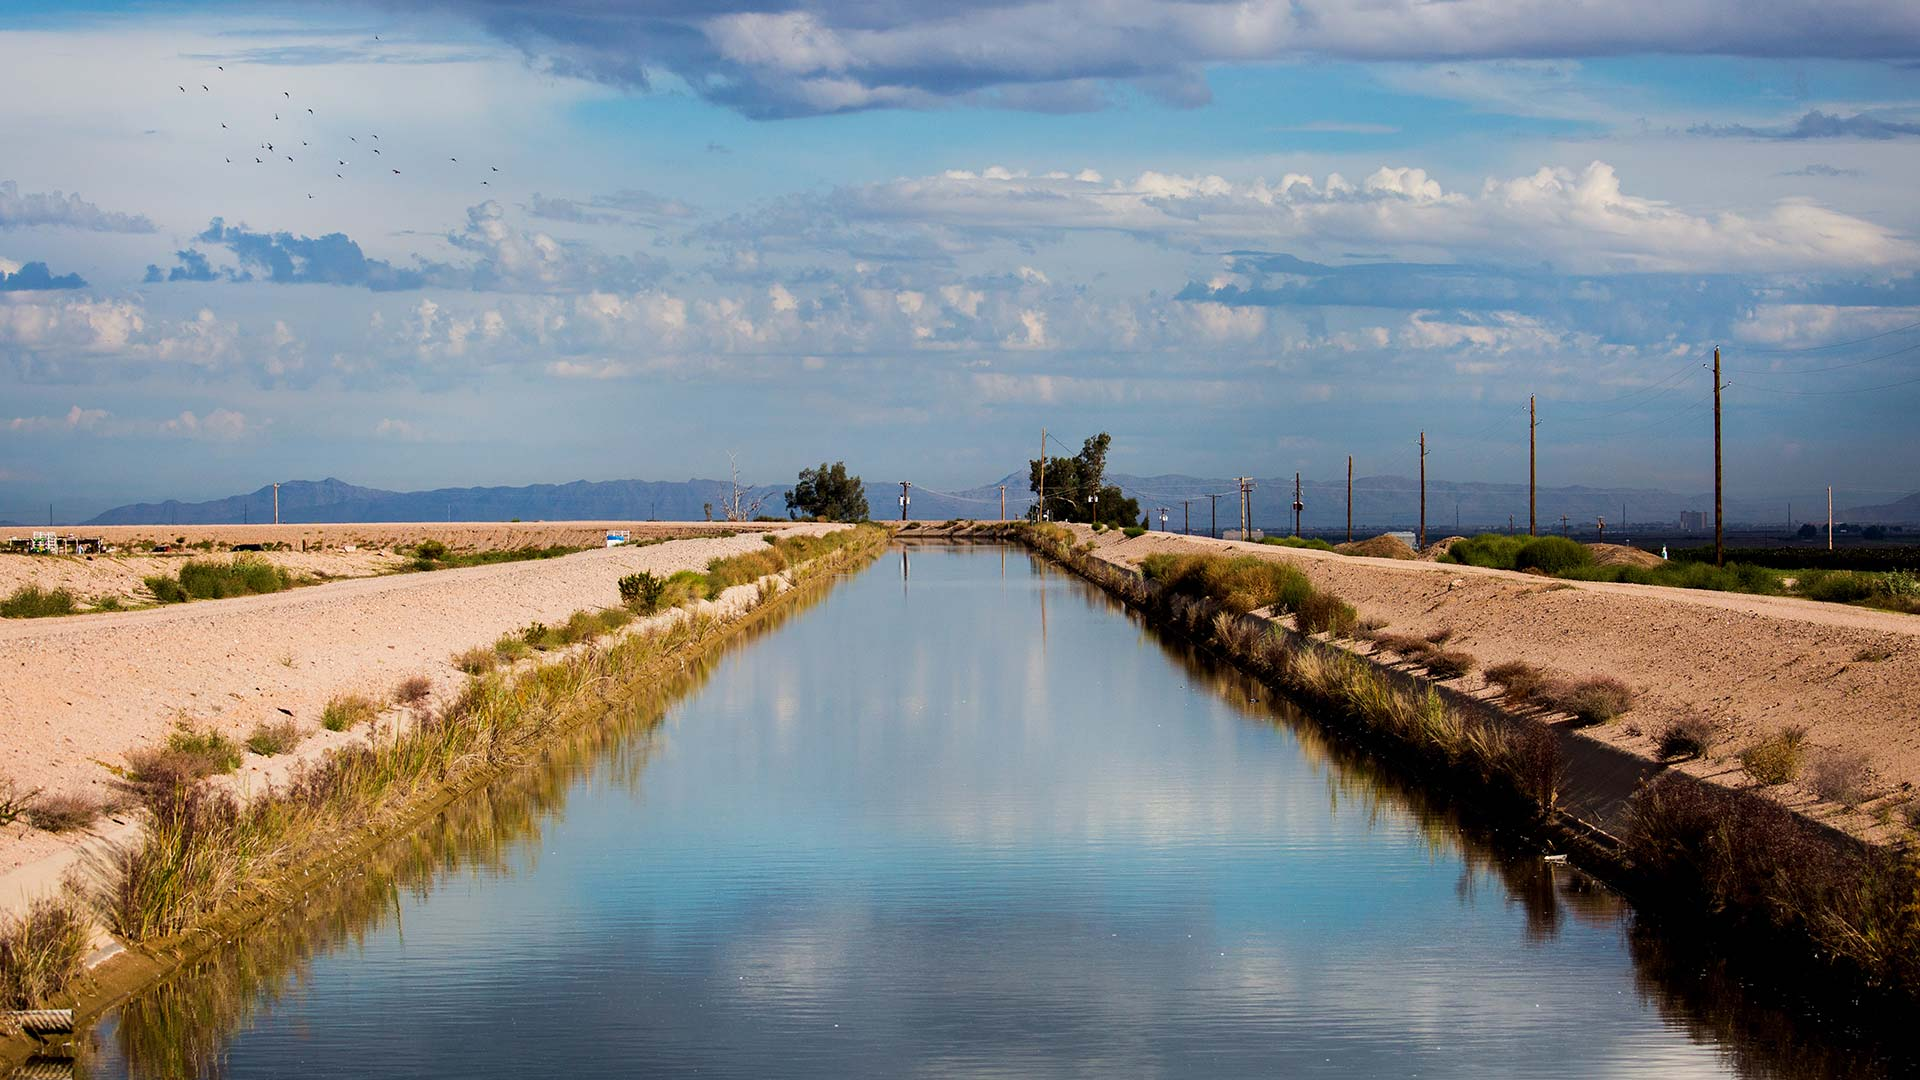 The Santa Rosa Canal ferries Central Arizona Project water to farmland within the Maricopa Stanfield Irrigation and Drainage District, Oct. 23, 2018.